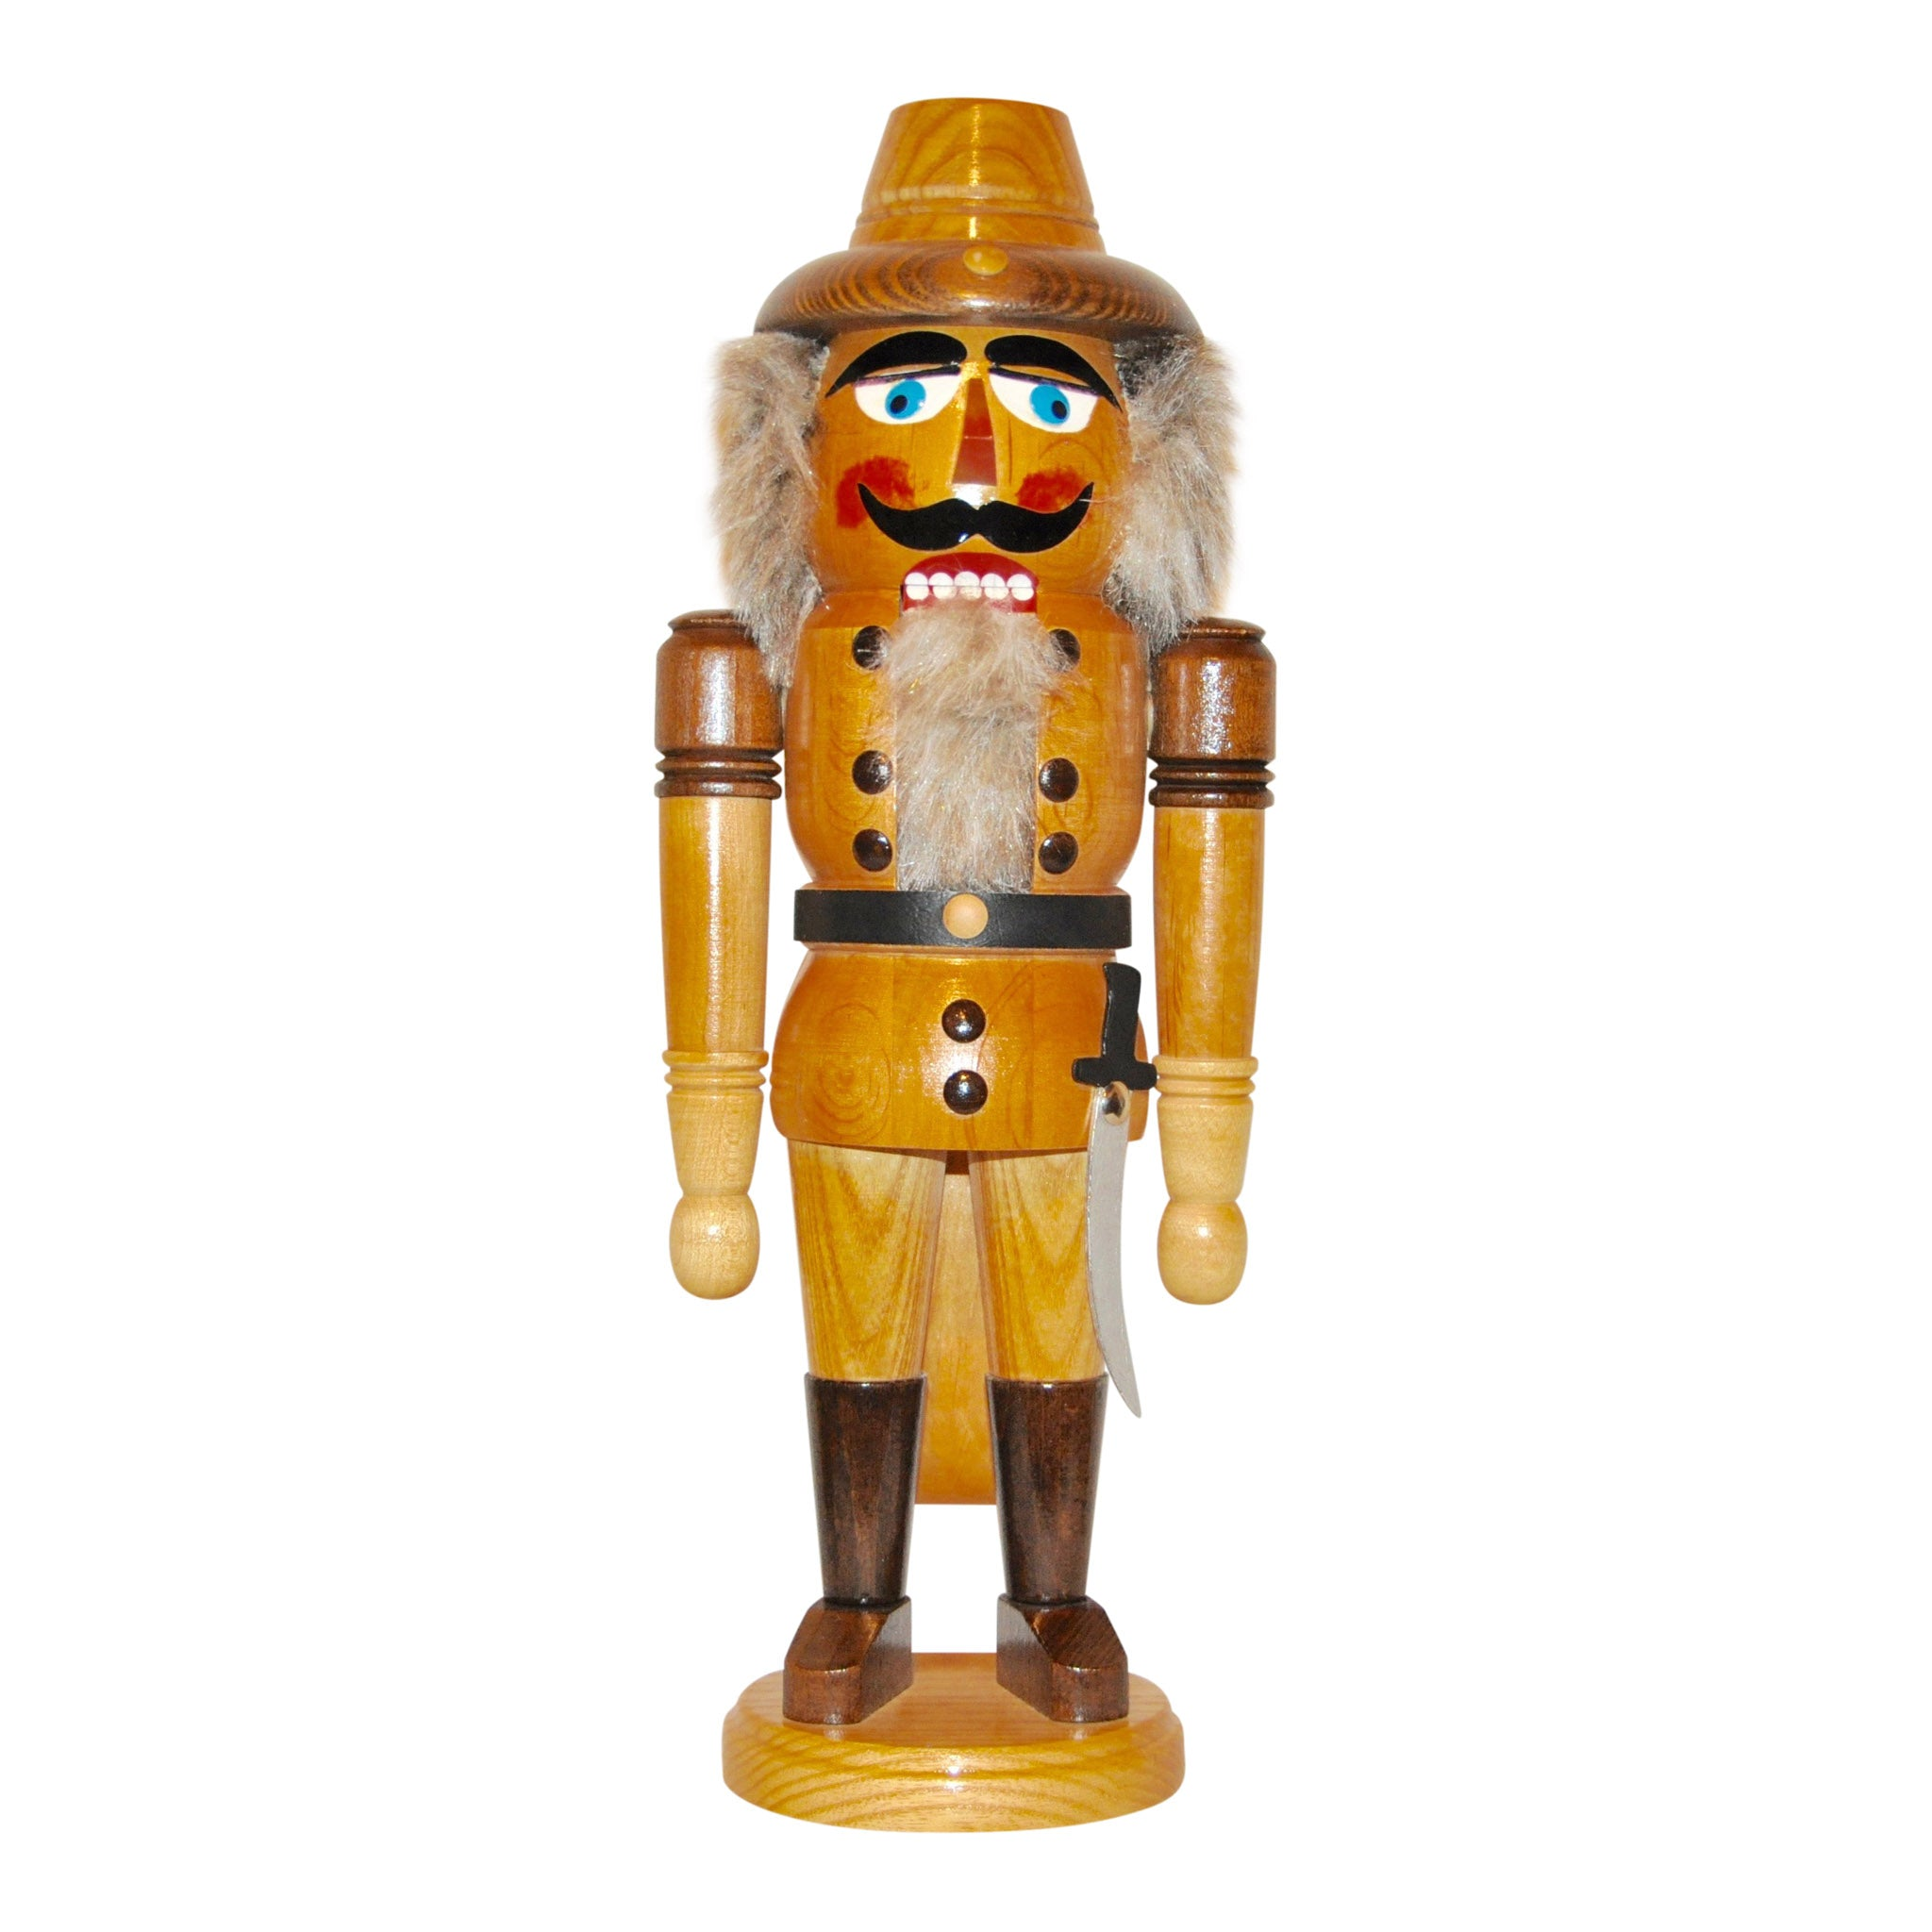 German Wooden Nutcracker